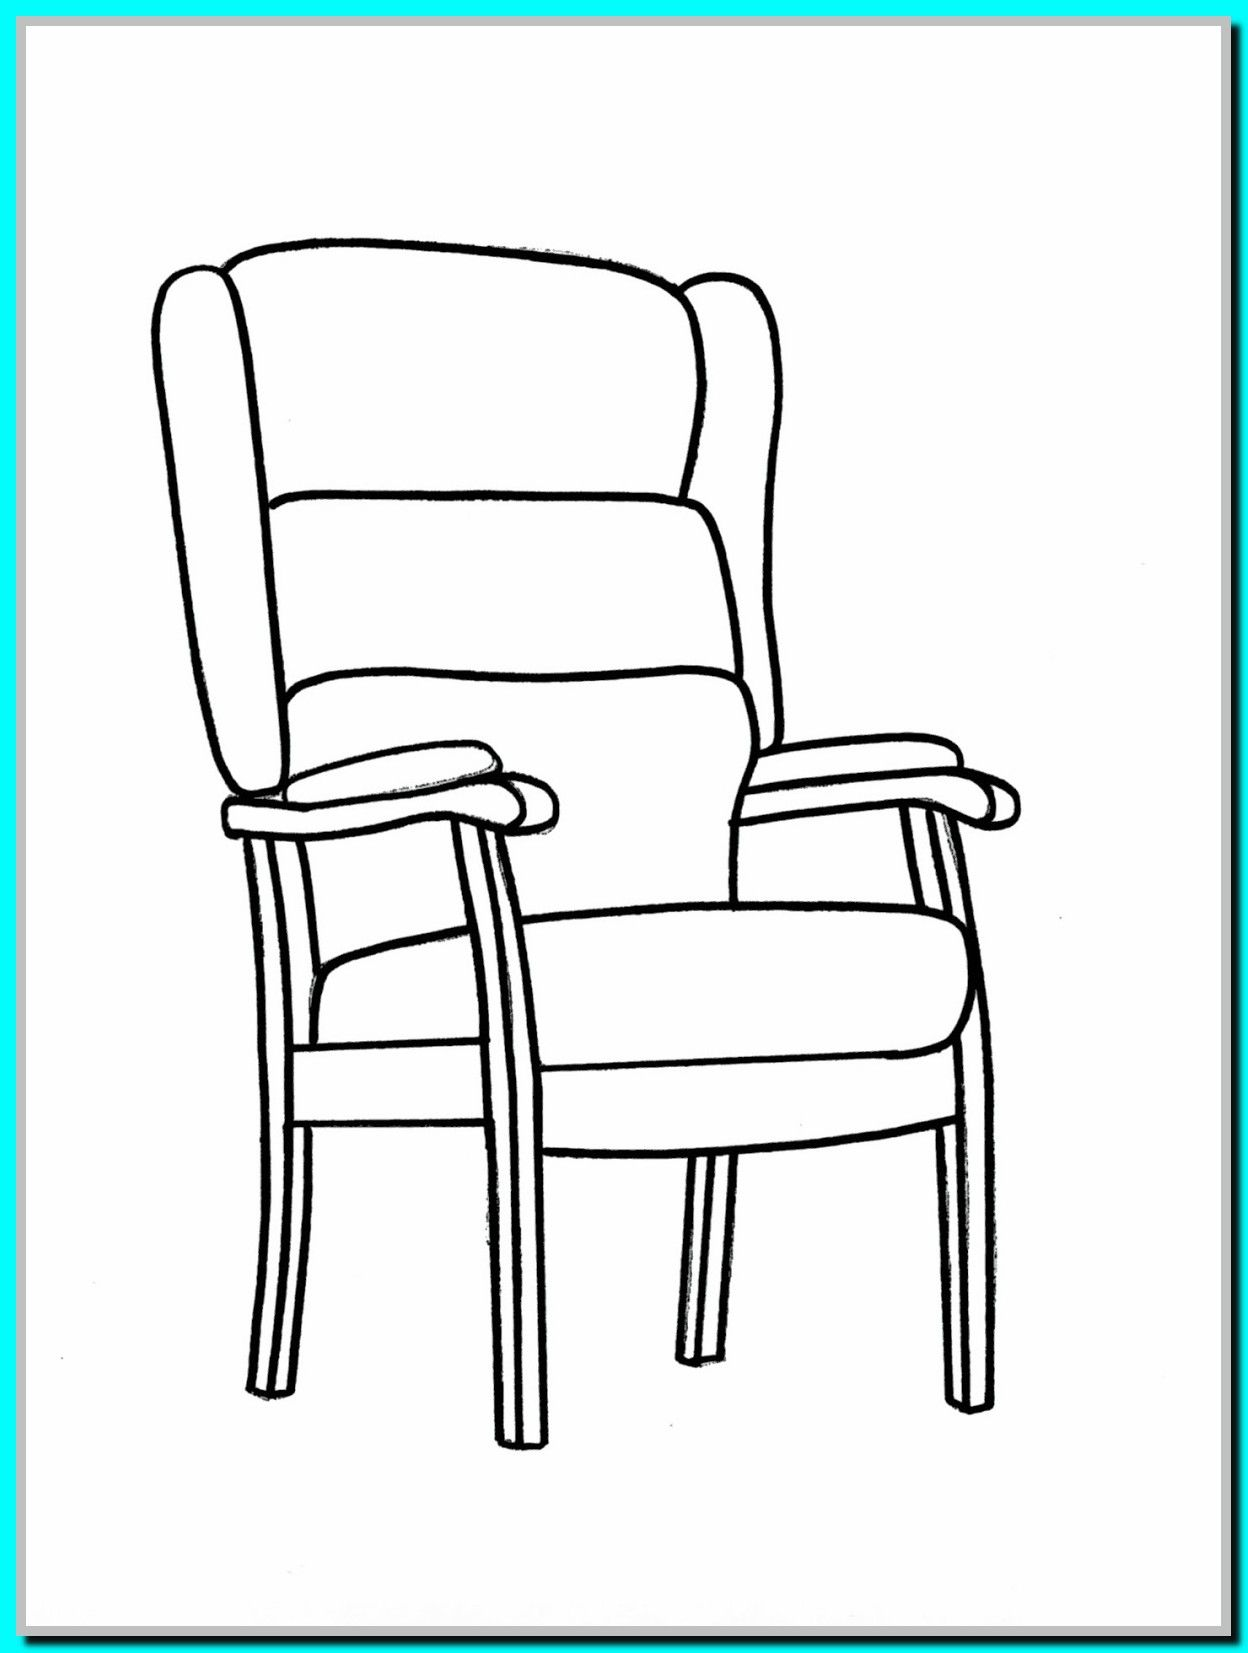 112 Reference Of Chair Outline Drawing In 2020 Drawing Furniture Chair Chairs Repurposed